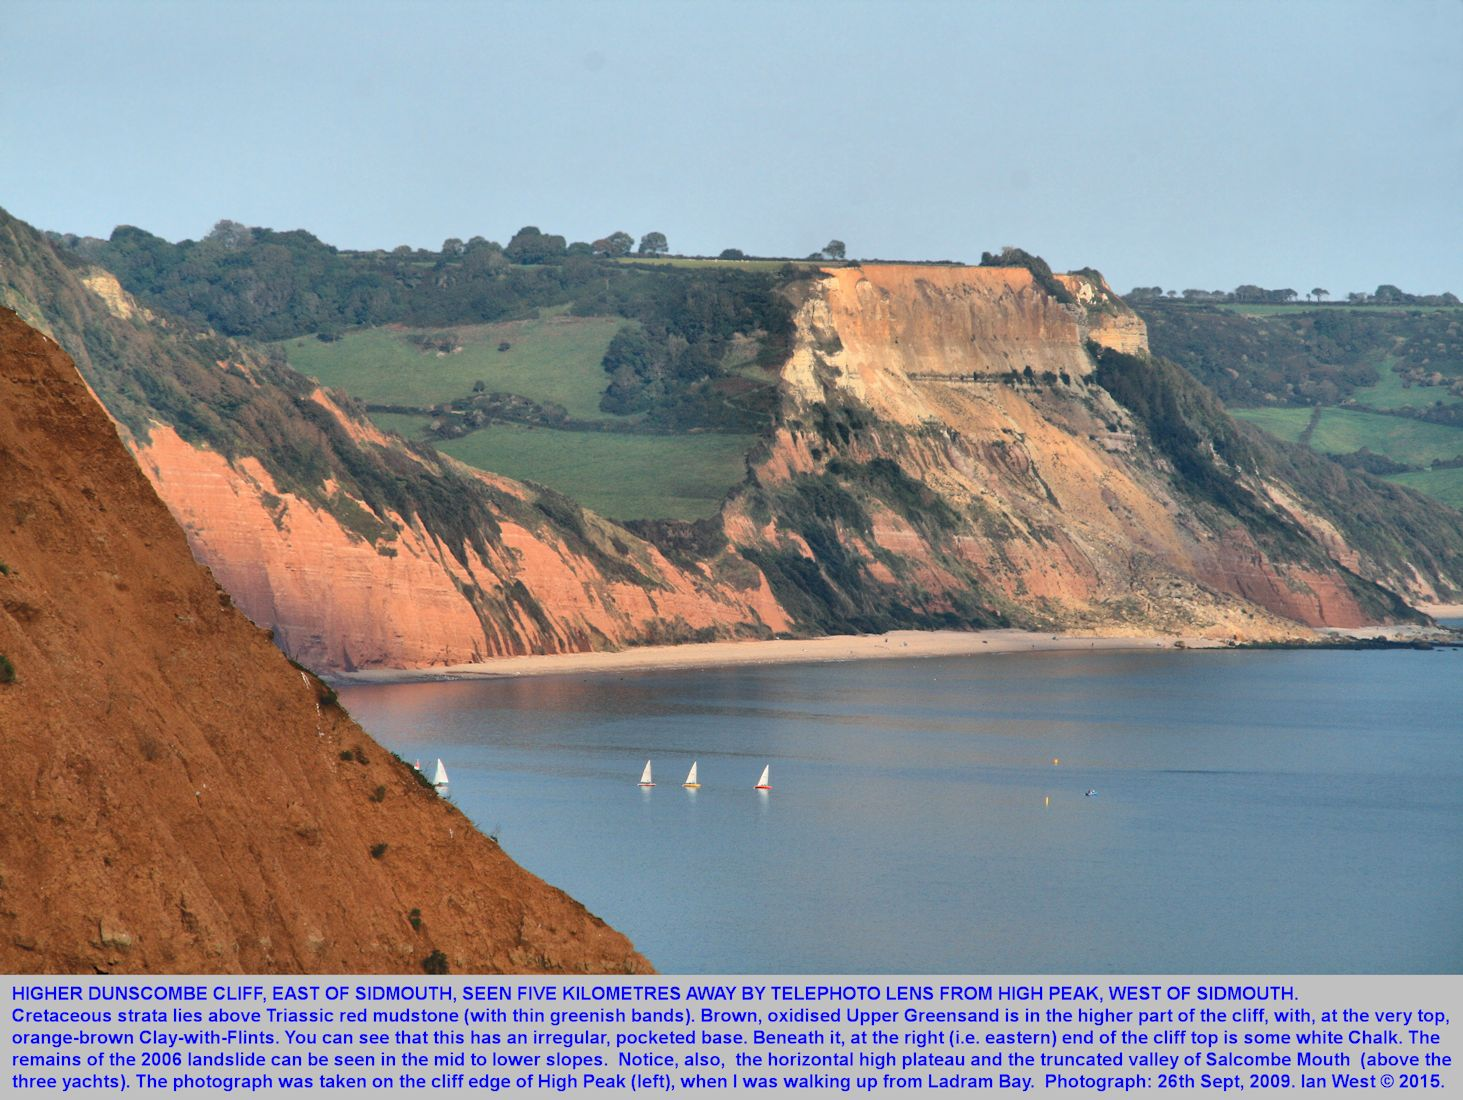 The cliff of Higher Dunscombe Hill, east of Sidmouth, seen at a distance from High Peak, west of Sidmouth, Devon